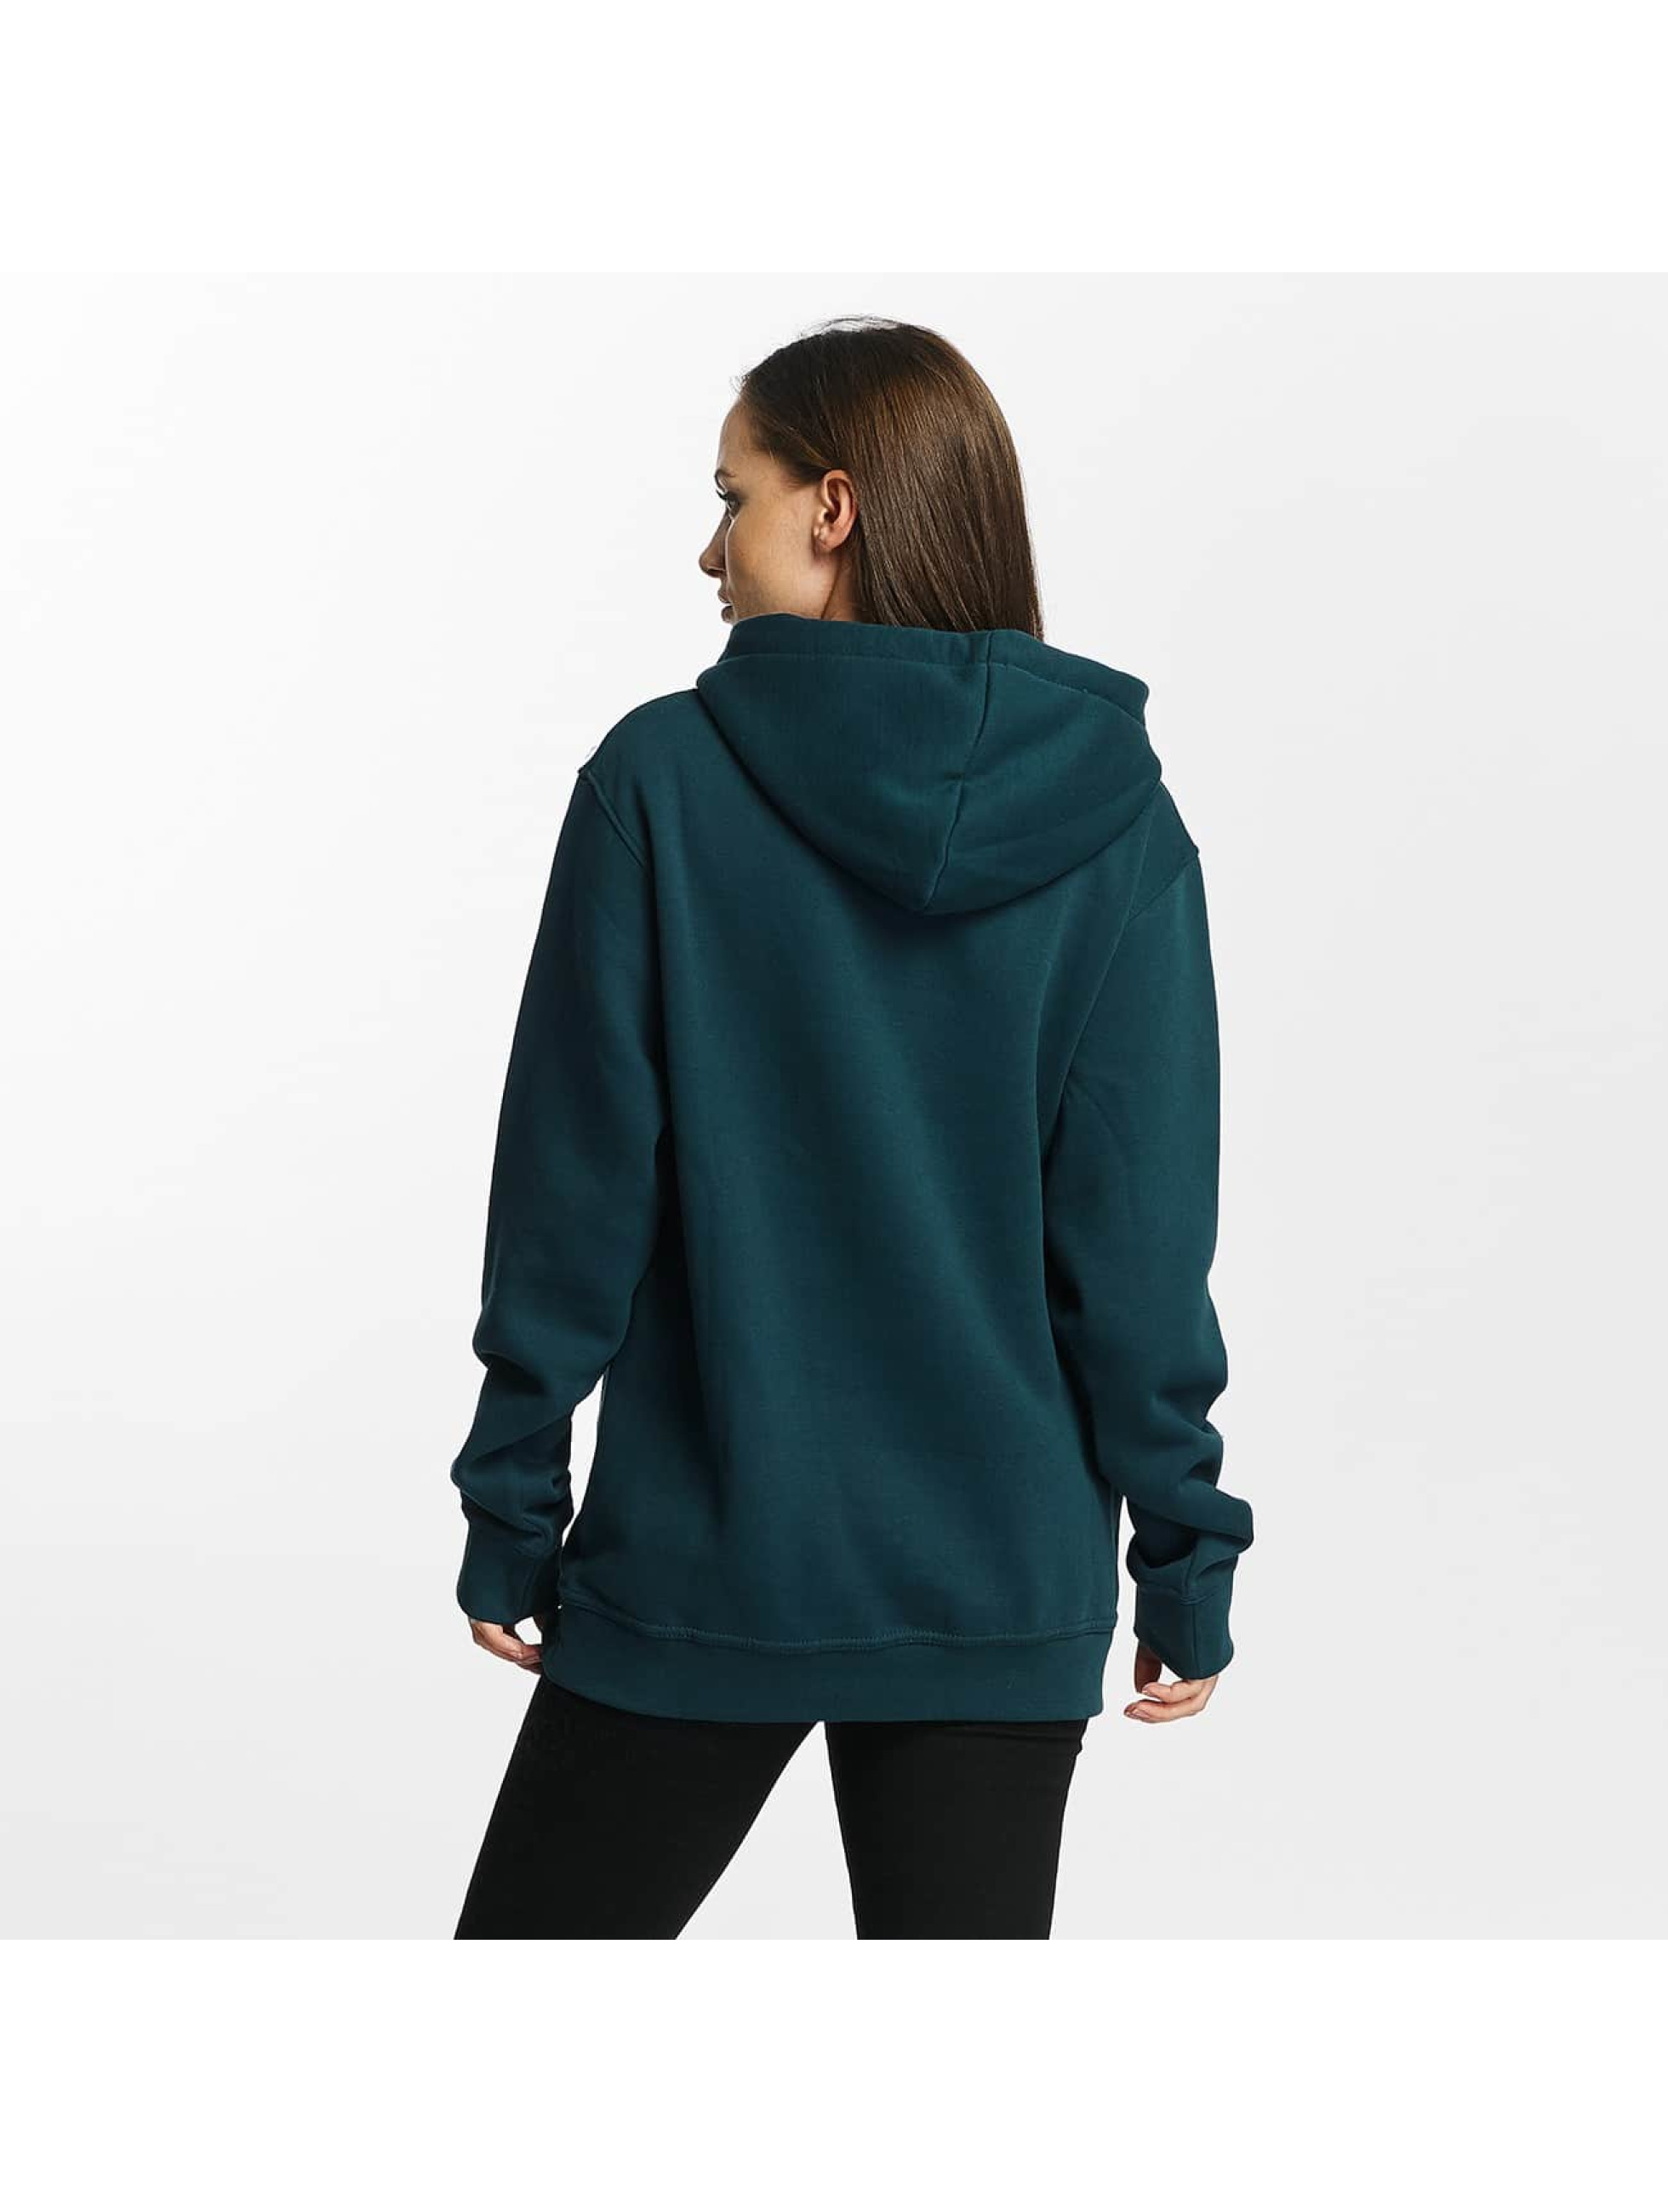 Cyprime Hoodie Cyber Oversized turquoise